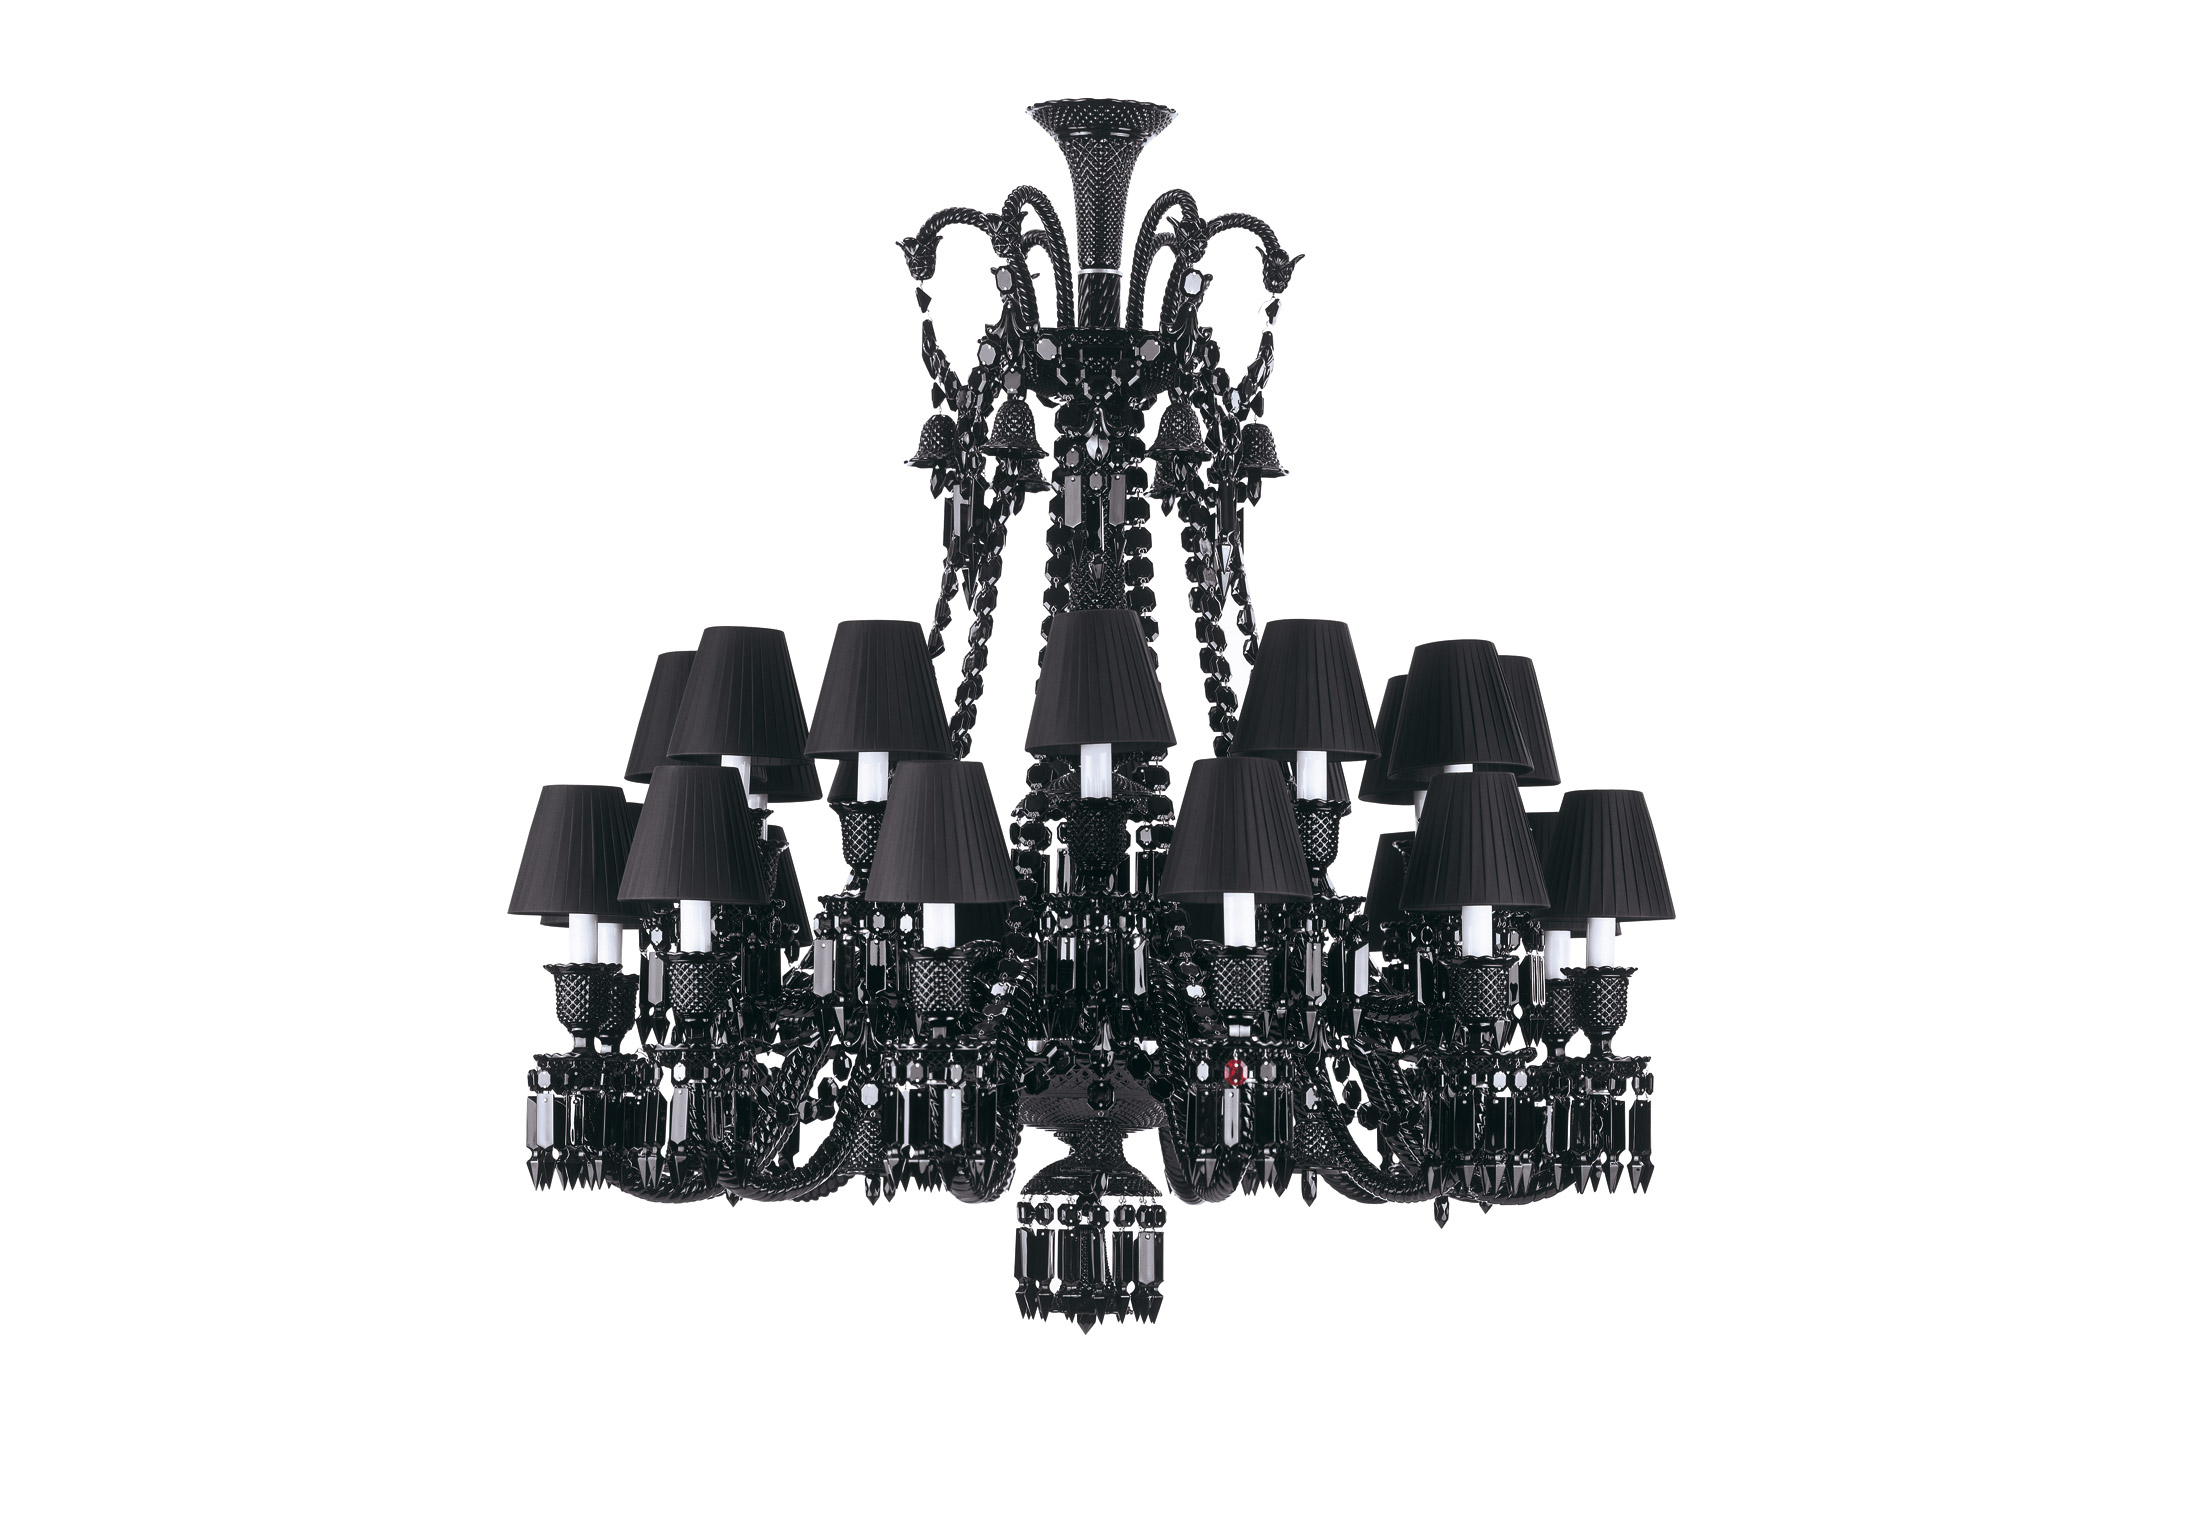 Zenith Midnight Chandelier; Zenith Midnight Chandelier ...  sc 1 st  Stylepark & Zenith Midnight Chandelier by Baccarat | STYLEPARK